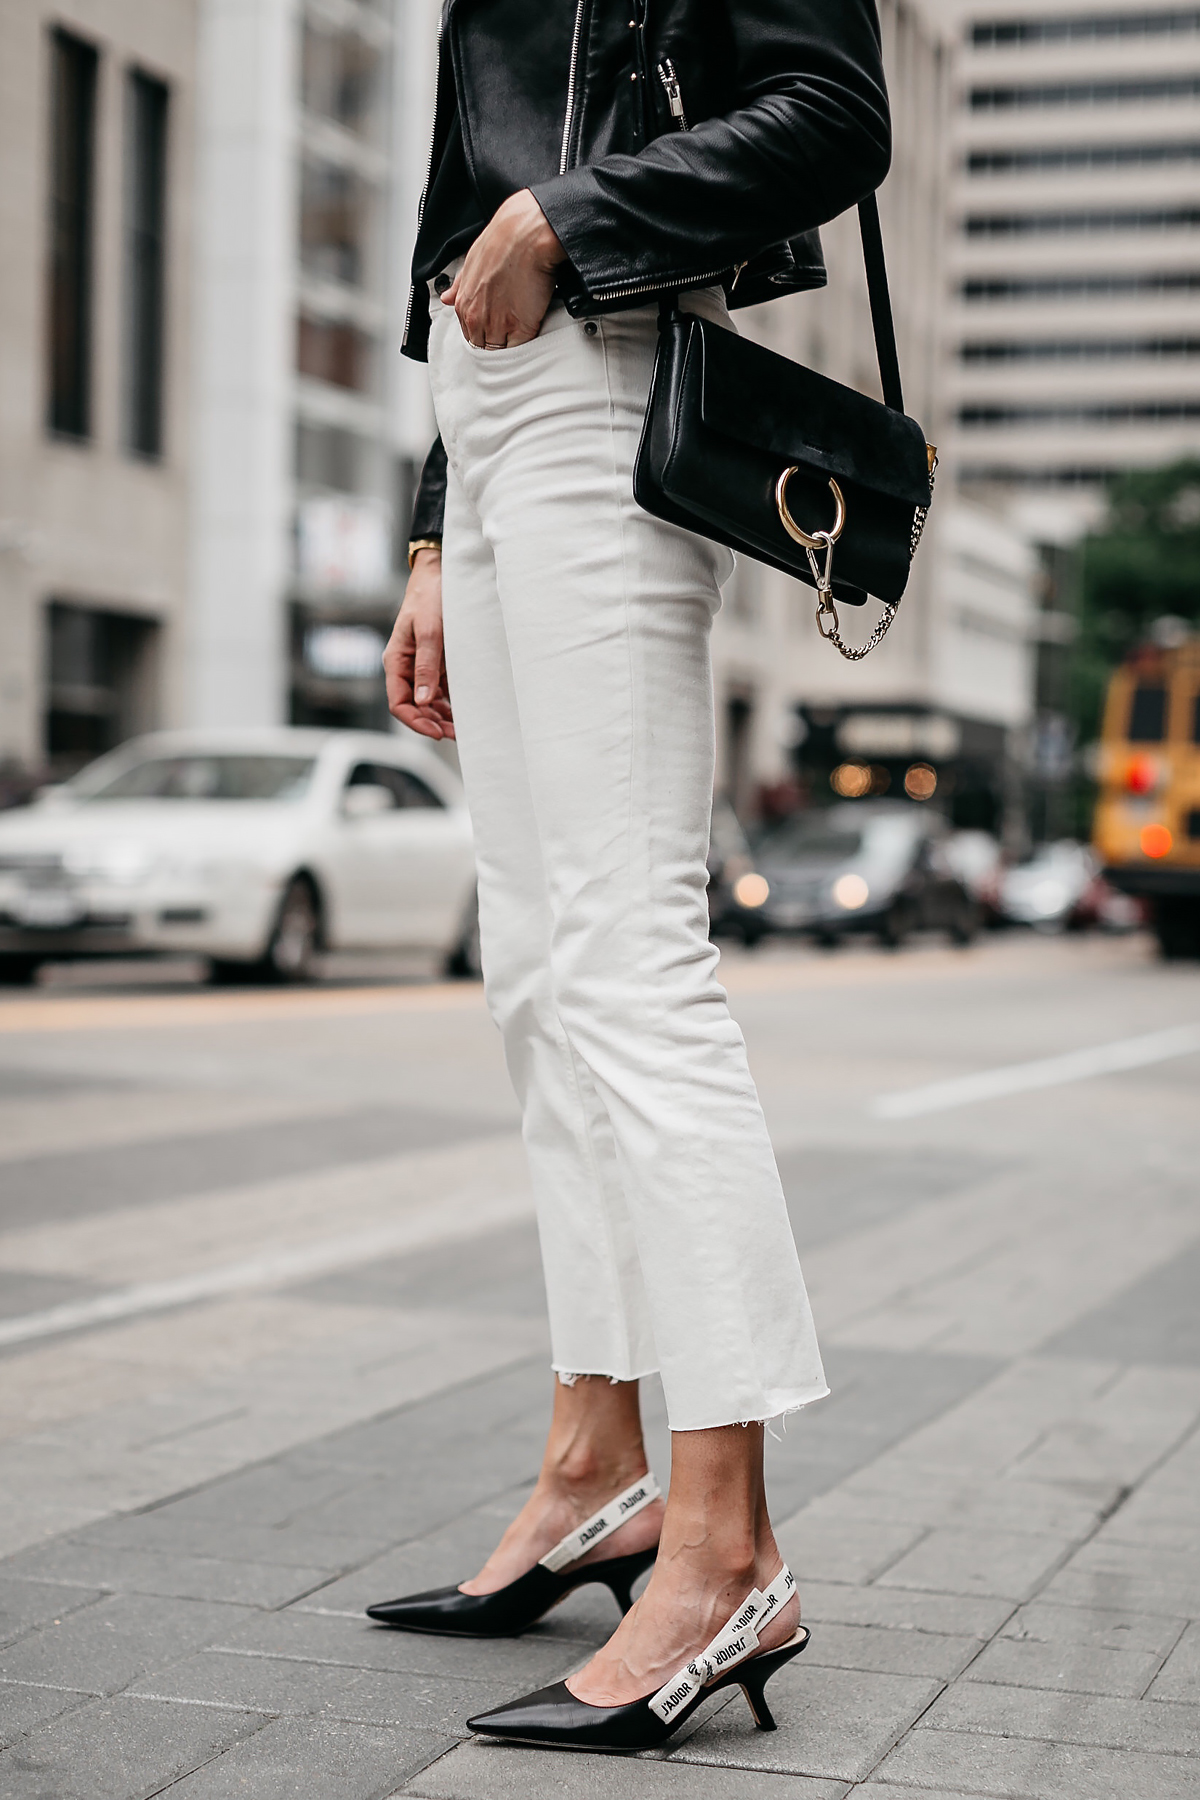 Woman Wearing Everlane White Crop Denim Dior Slingbacks Chloe Faye Black Handbag Fashion Jackson Dallas Blogger Fashion Blogger Street Style